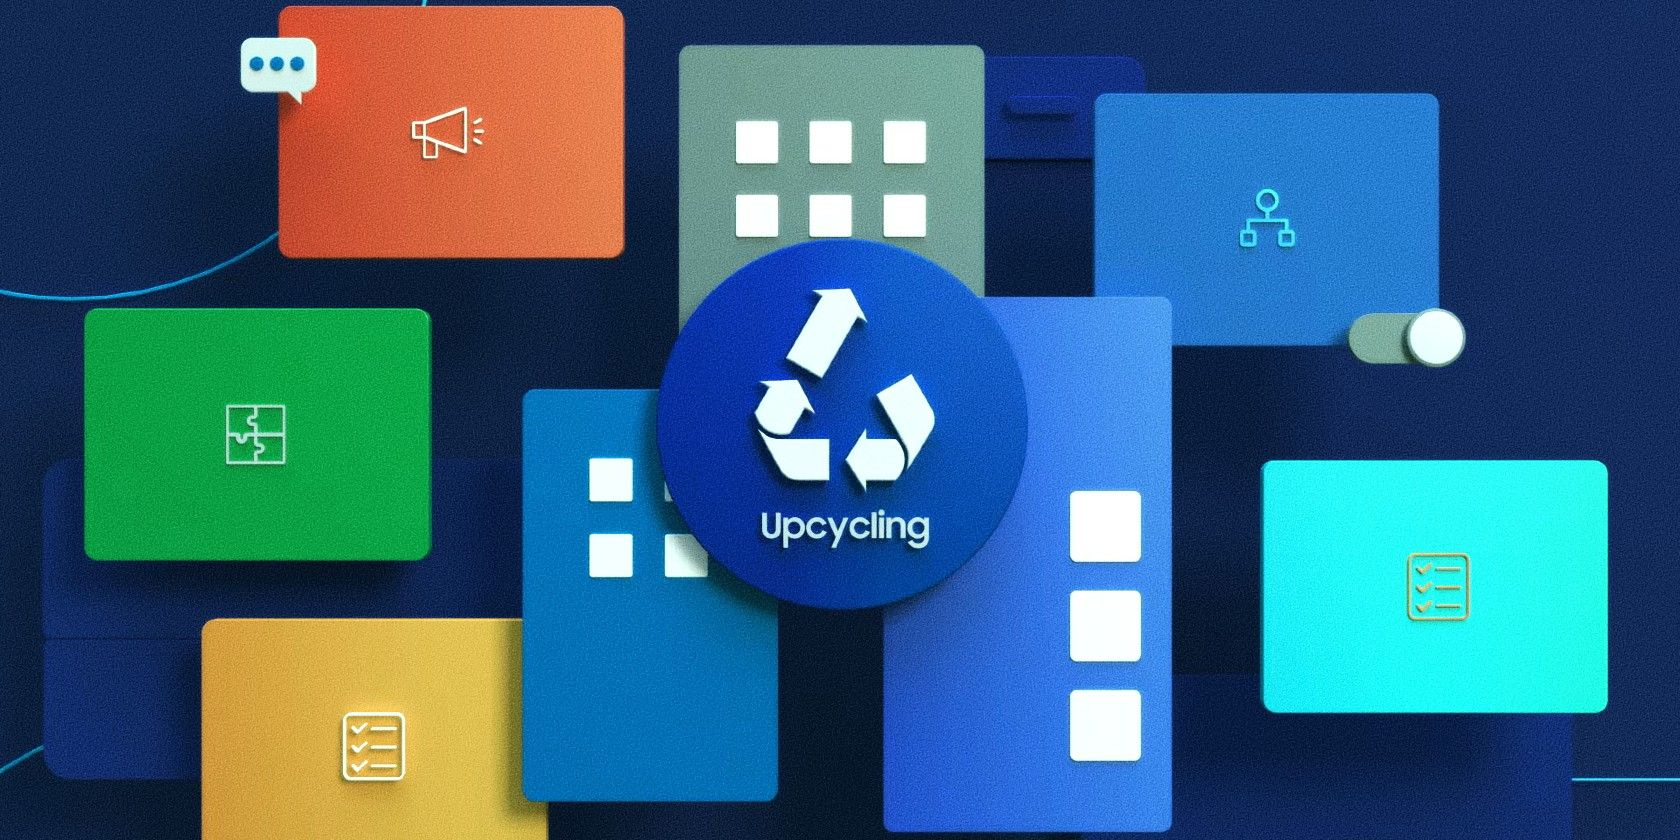 """Samsung Breathes Life Into Old Hardware With """"Upcycling at Home"""" Scheme"""